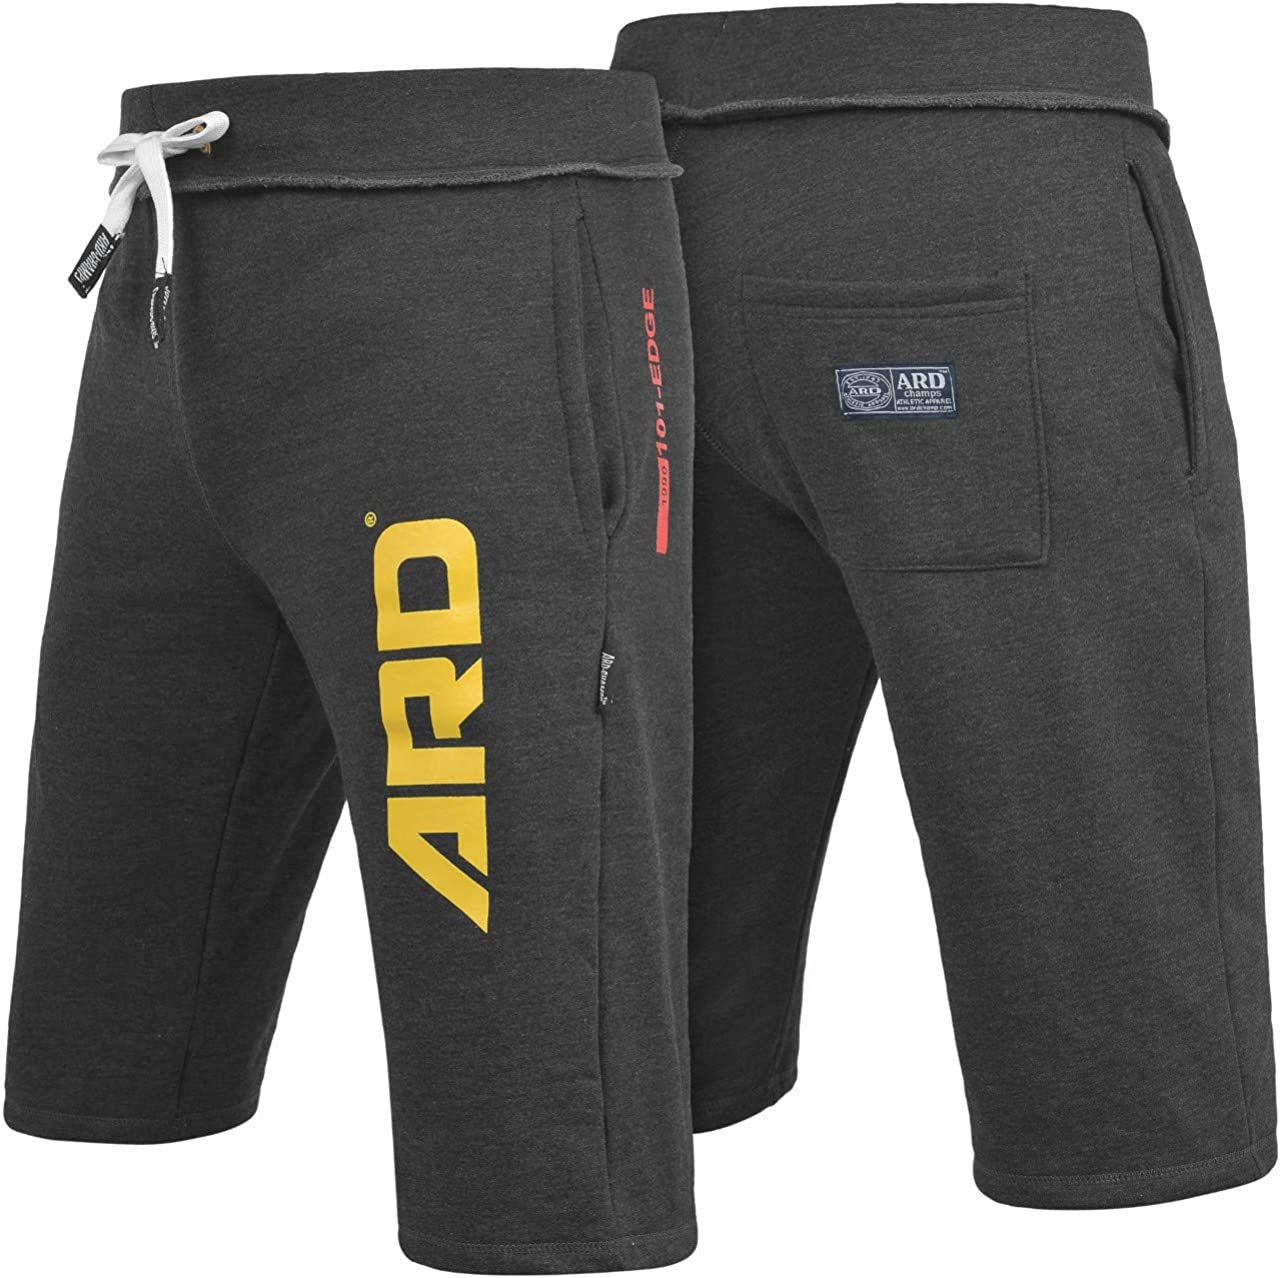 ARD CHAMPS Mens Cotton Fleece Shorts Jogging Casual Home Wear MMA Boxing Martial Art Jogger (S-XXL) (Charcoal, Medium)